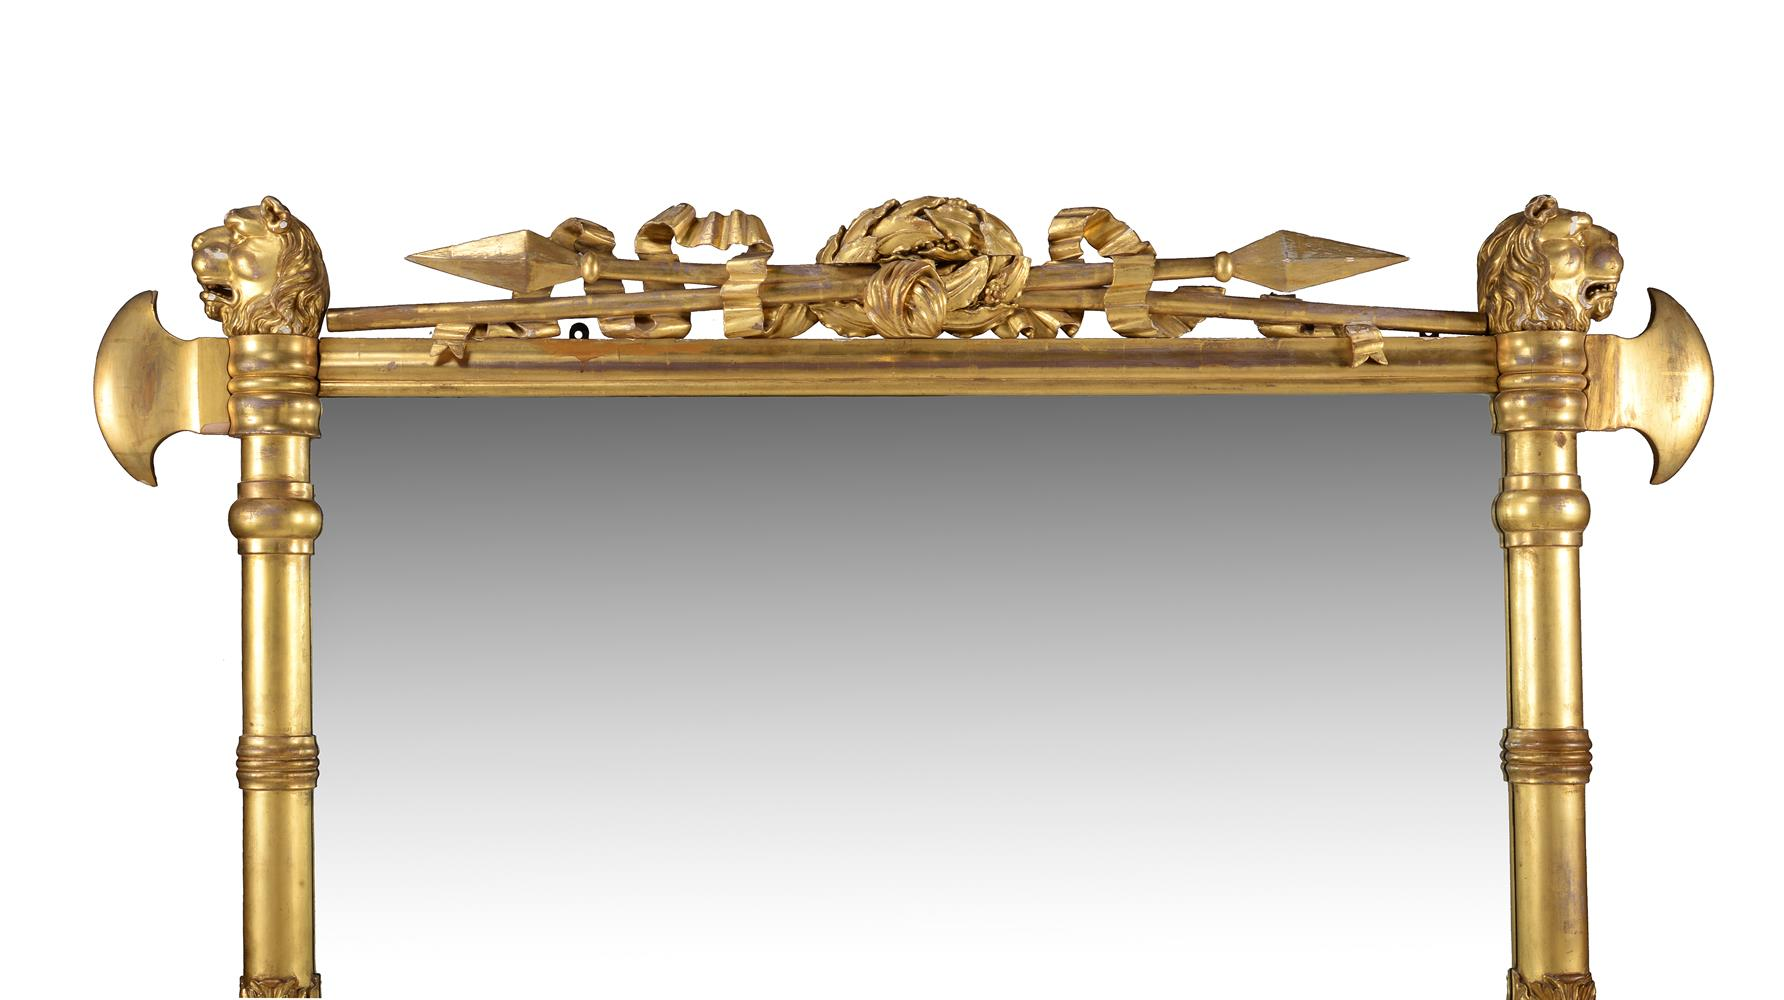 A George IV giltwood overmantel wall mirror - Image 2 of 4